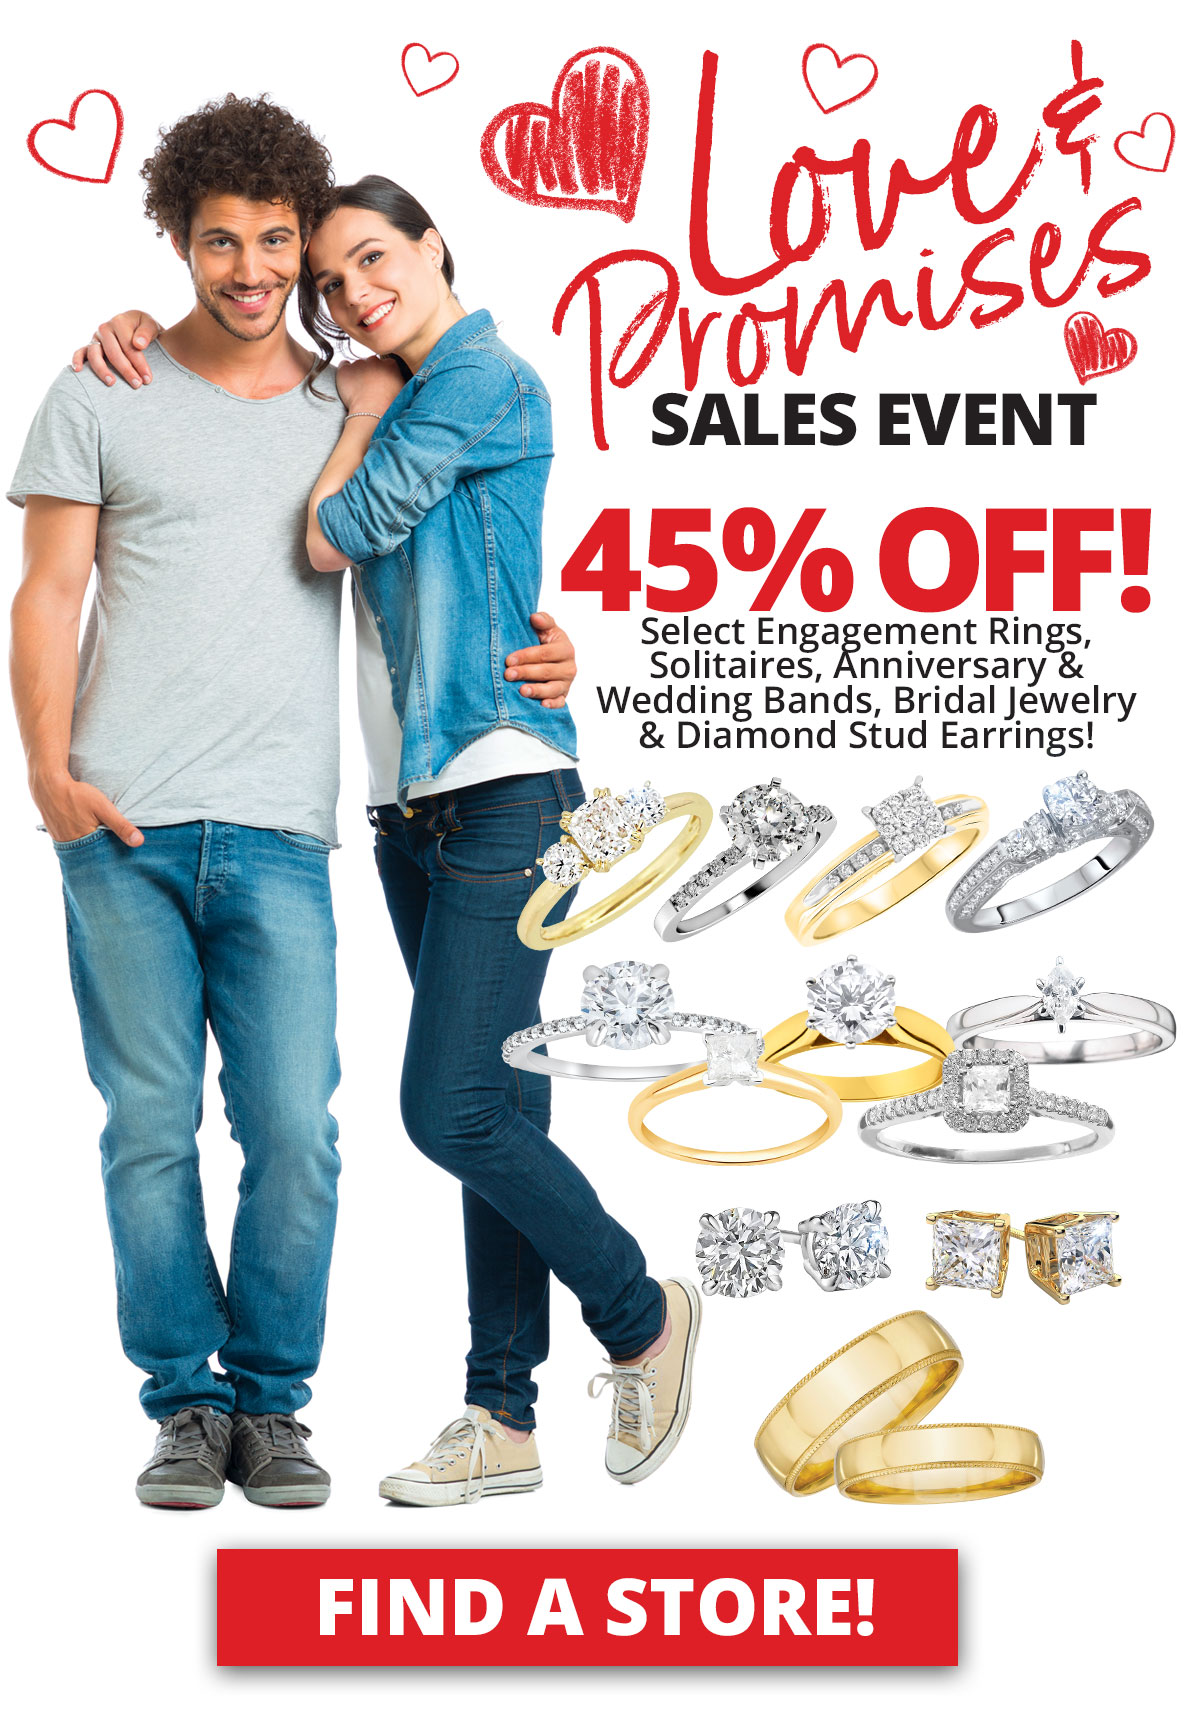 Love & Promises Sales Event 45% OFF Select Engagement Rings, Solitaires, Anniversary & Wedding Bands, Bridal Jewelry & Diamond Stud Earrings! Sale Runs February 1 - 28, 2021. Layaway discounts must be reduced by 12.5%. Offer cannot be combined with any other offer. Discount not available on previously sold merchandise. Excludes all 3rd party appraised/certified jewelry. Rolex, gold and other high end watches excluded.